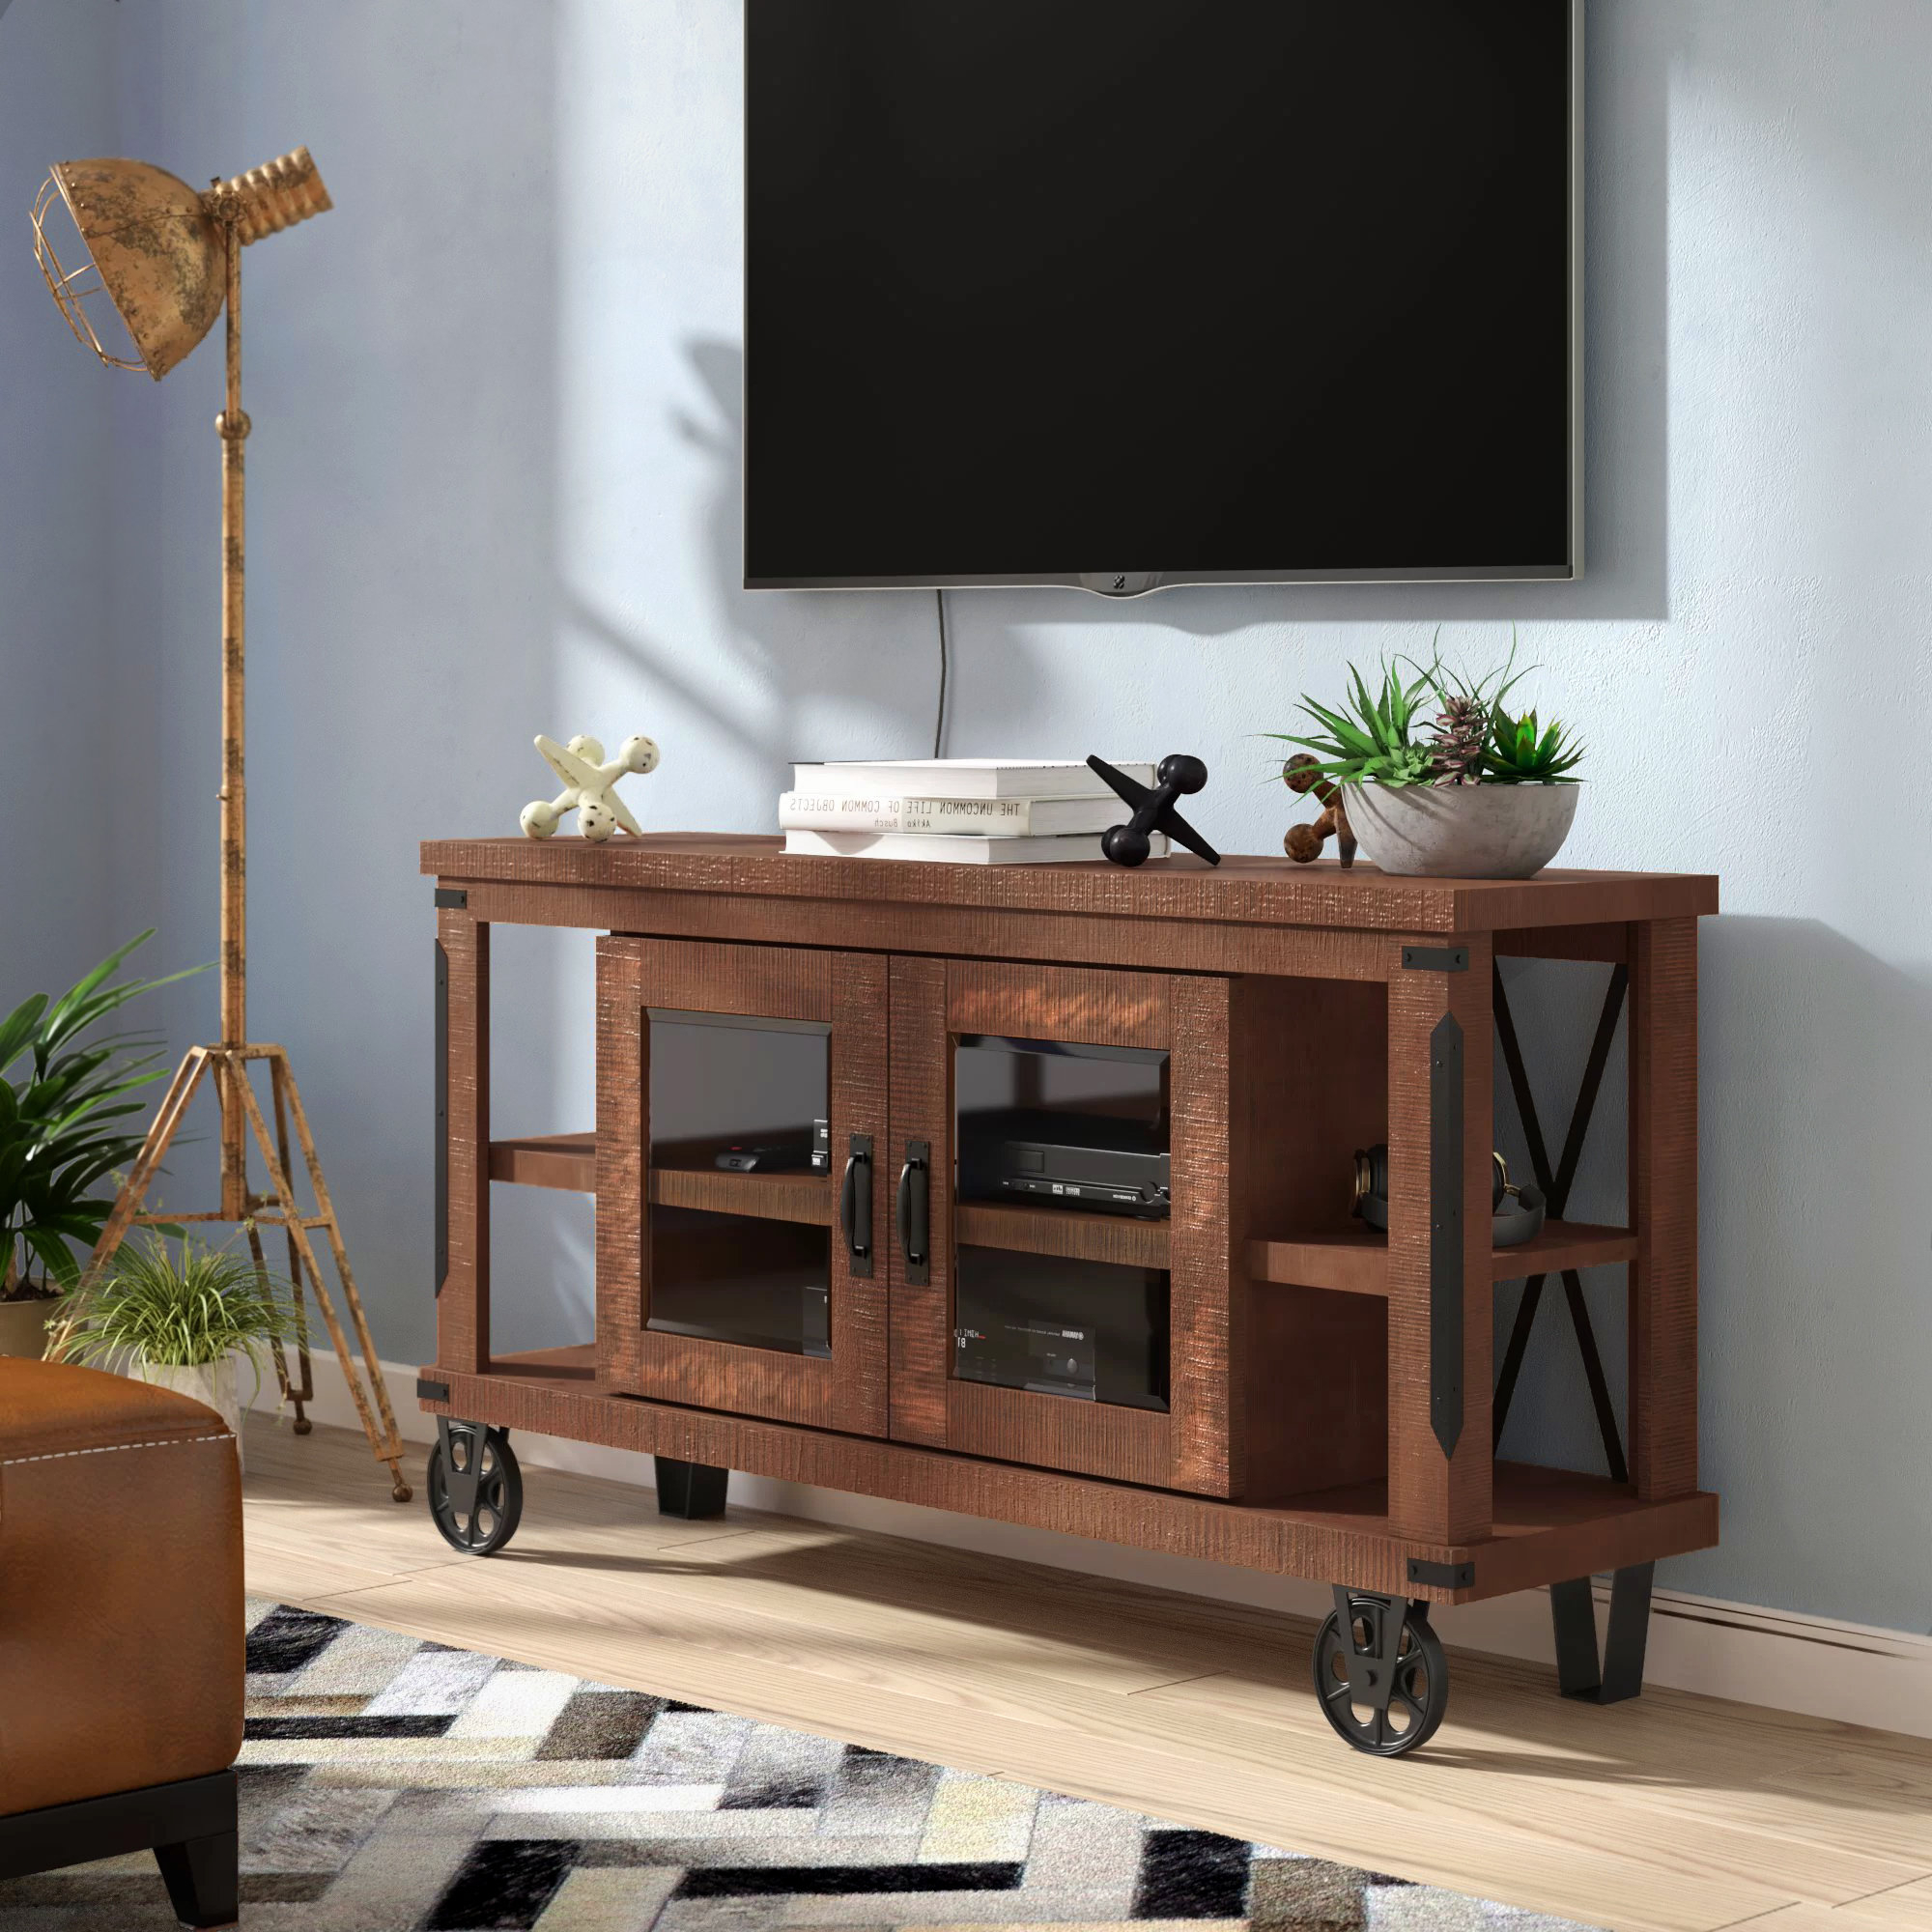 Preferred 60 69 Inch Tv Stands You'll Love (View 11 of 20)